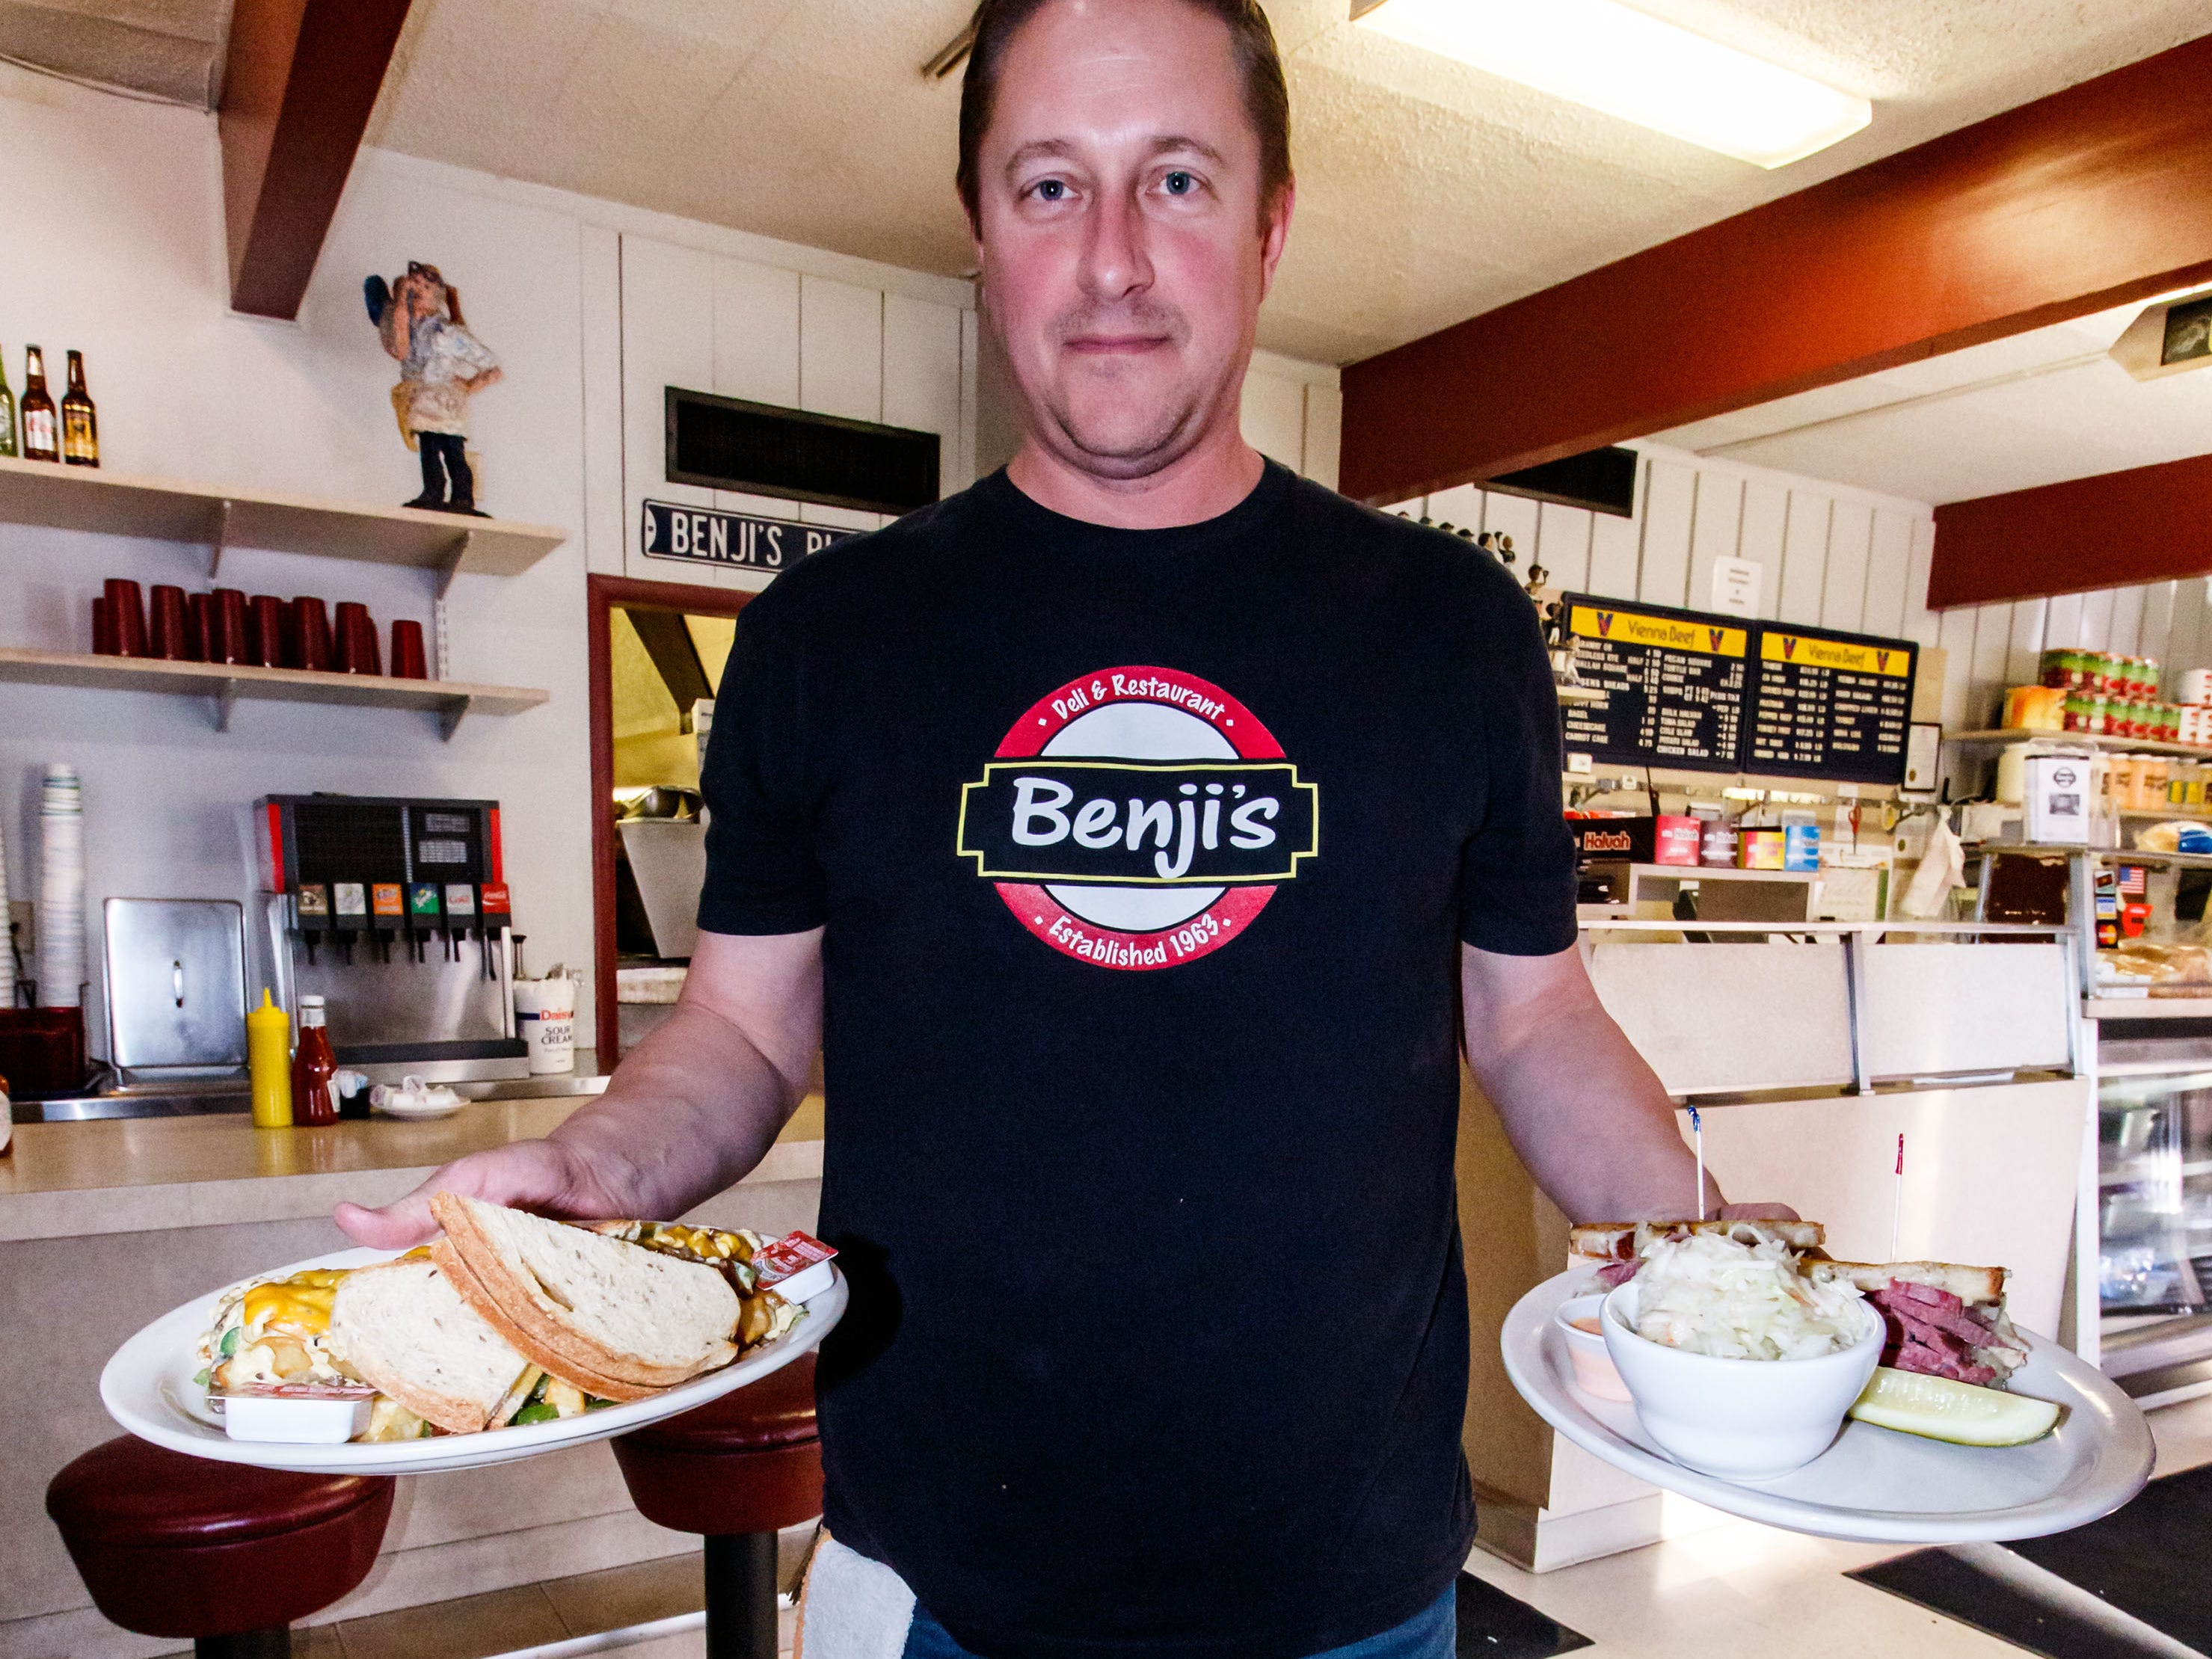 Owner Mike Price of Benji's Delicatessen in Shorewood serves up the Super Hoppel Poppel breakfast special and a Classic Reuben sandwich on Monday, Dec. 10, 2018.